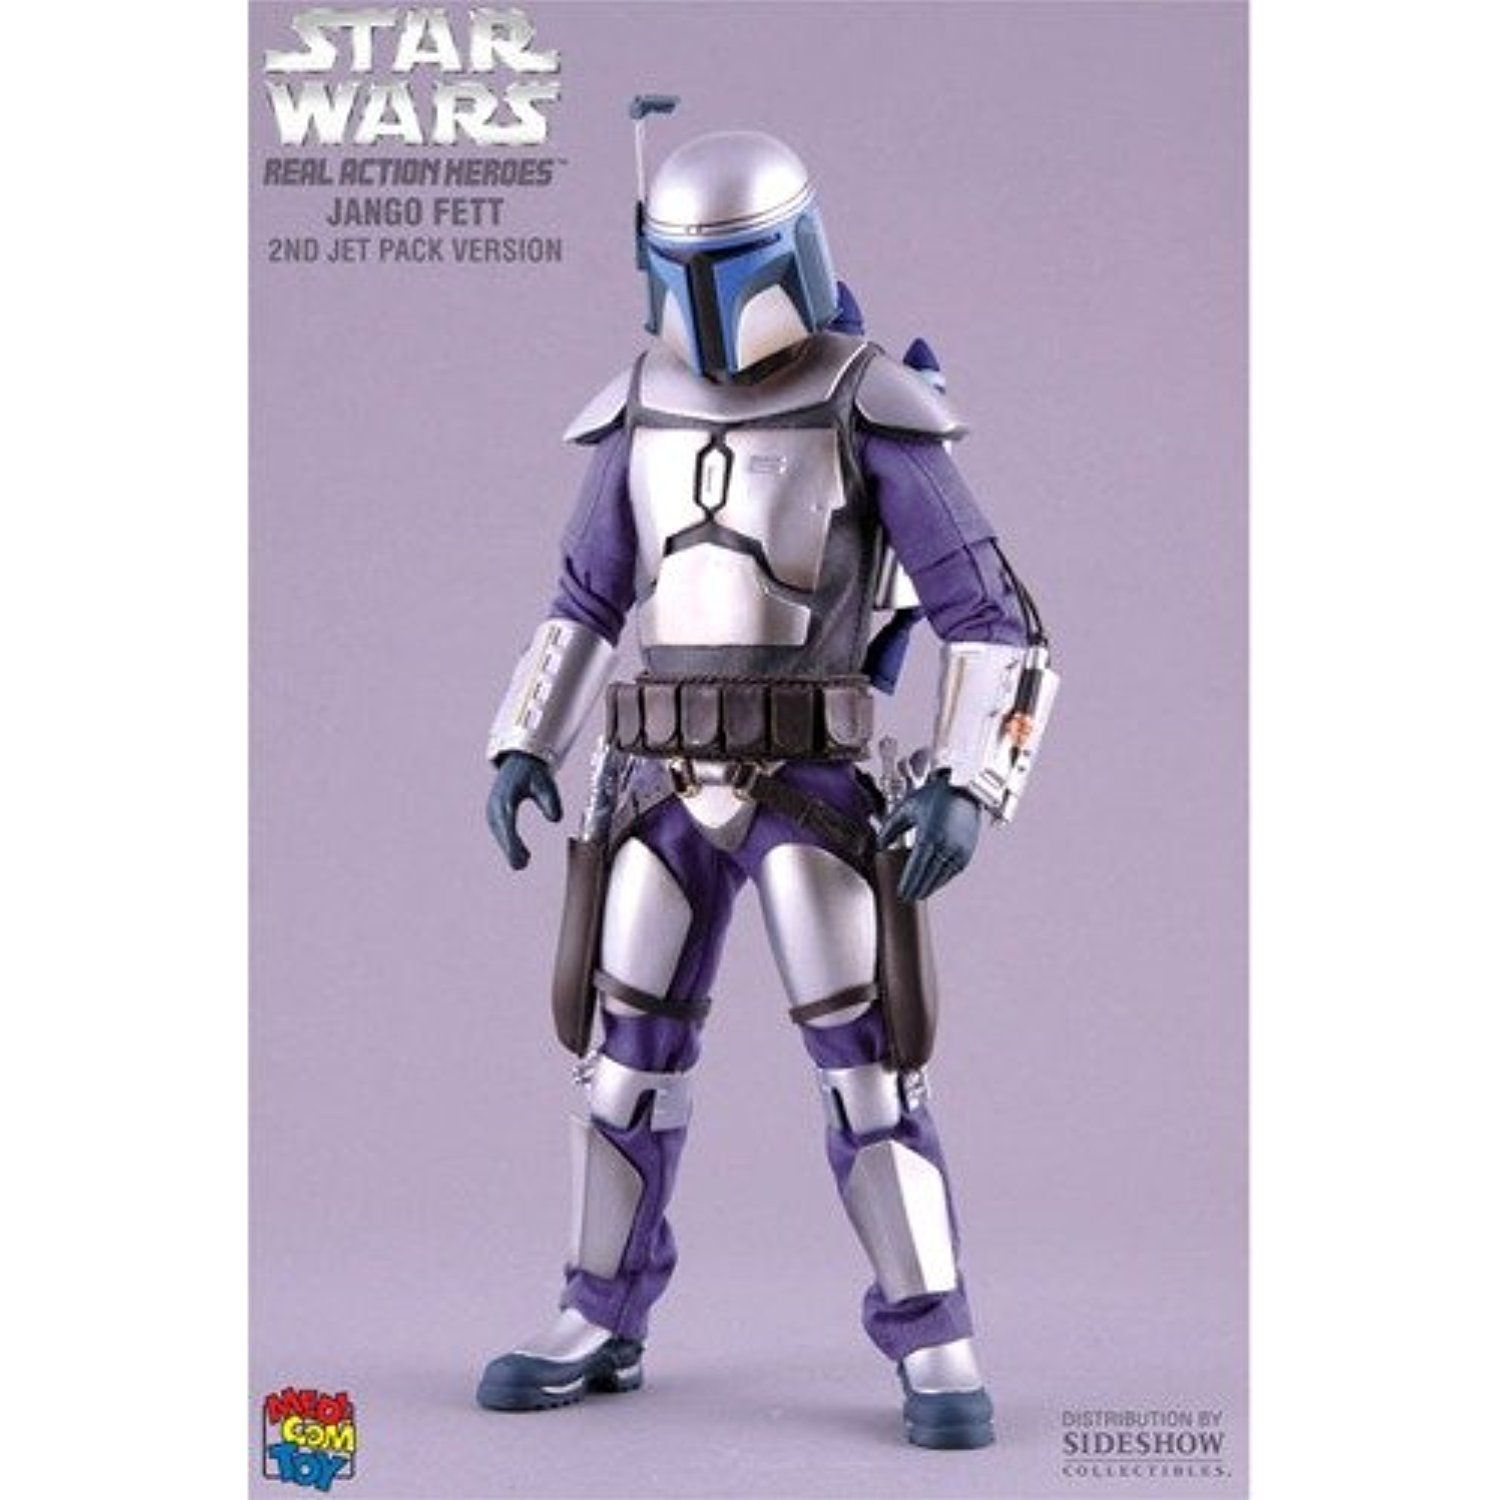 Jango Fett 2nd Jet Pack Star Wars Real Action Hero Sixth